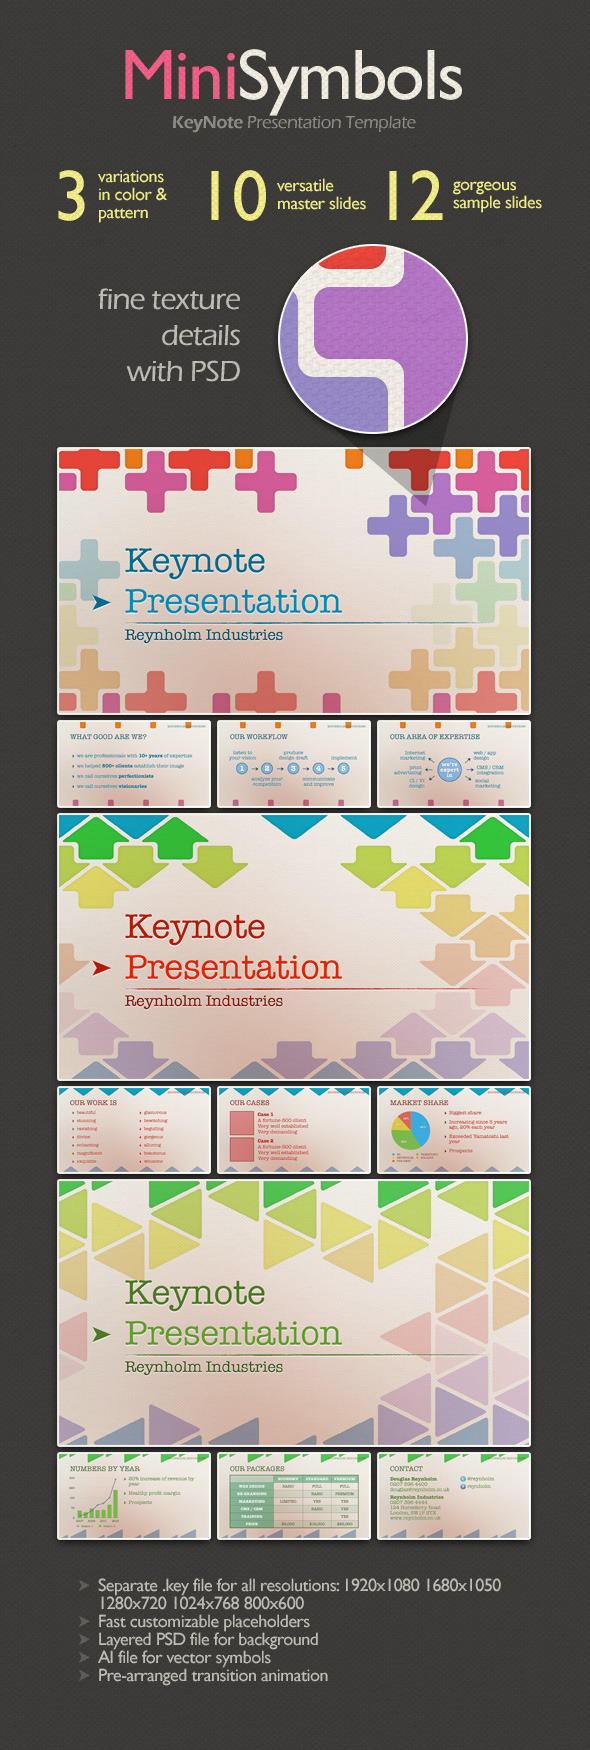 MiniSymbols Keynote Presentation Template - Creative Keynote Templates